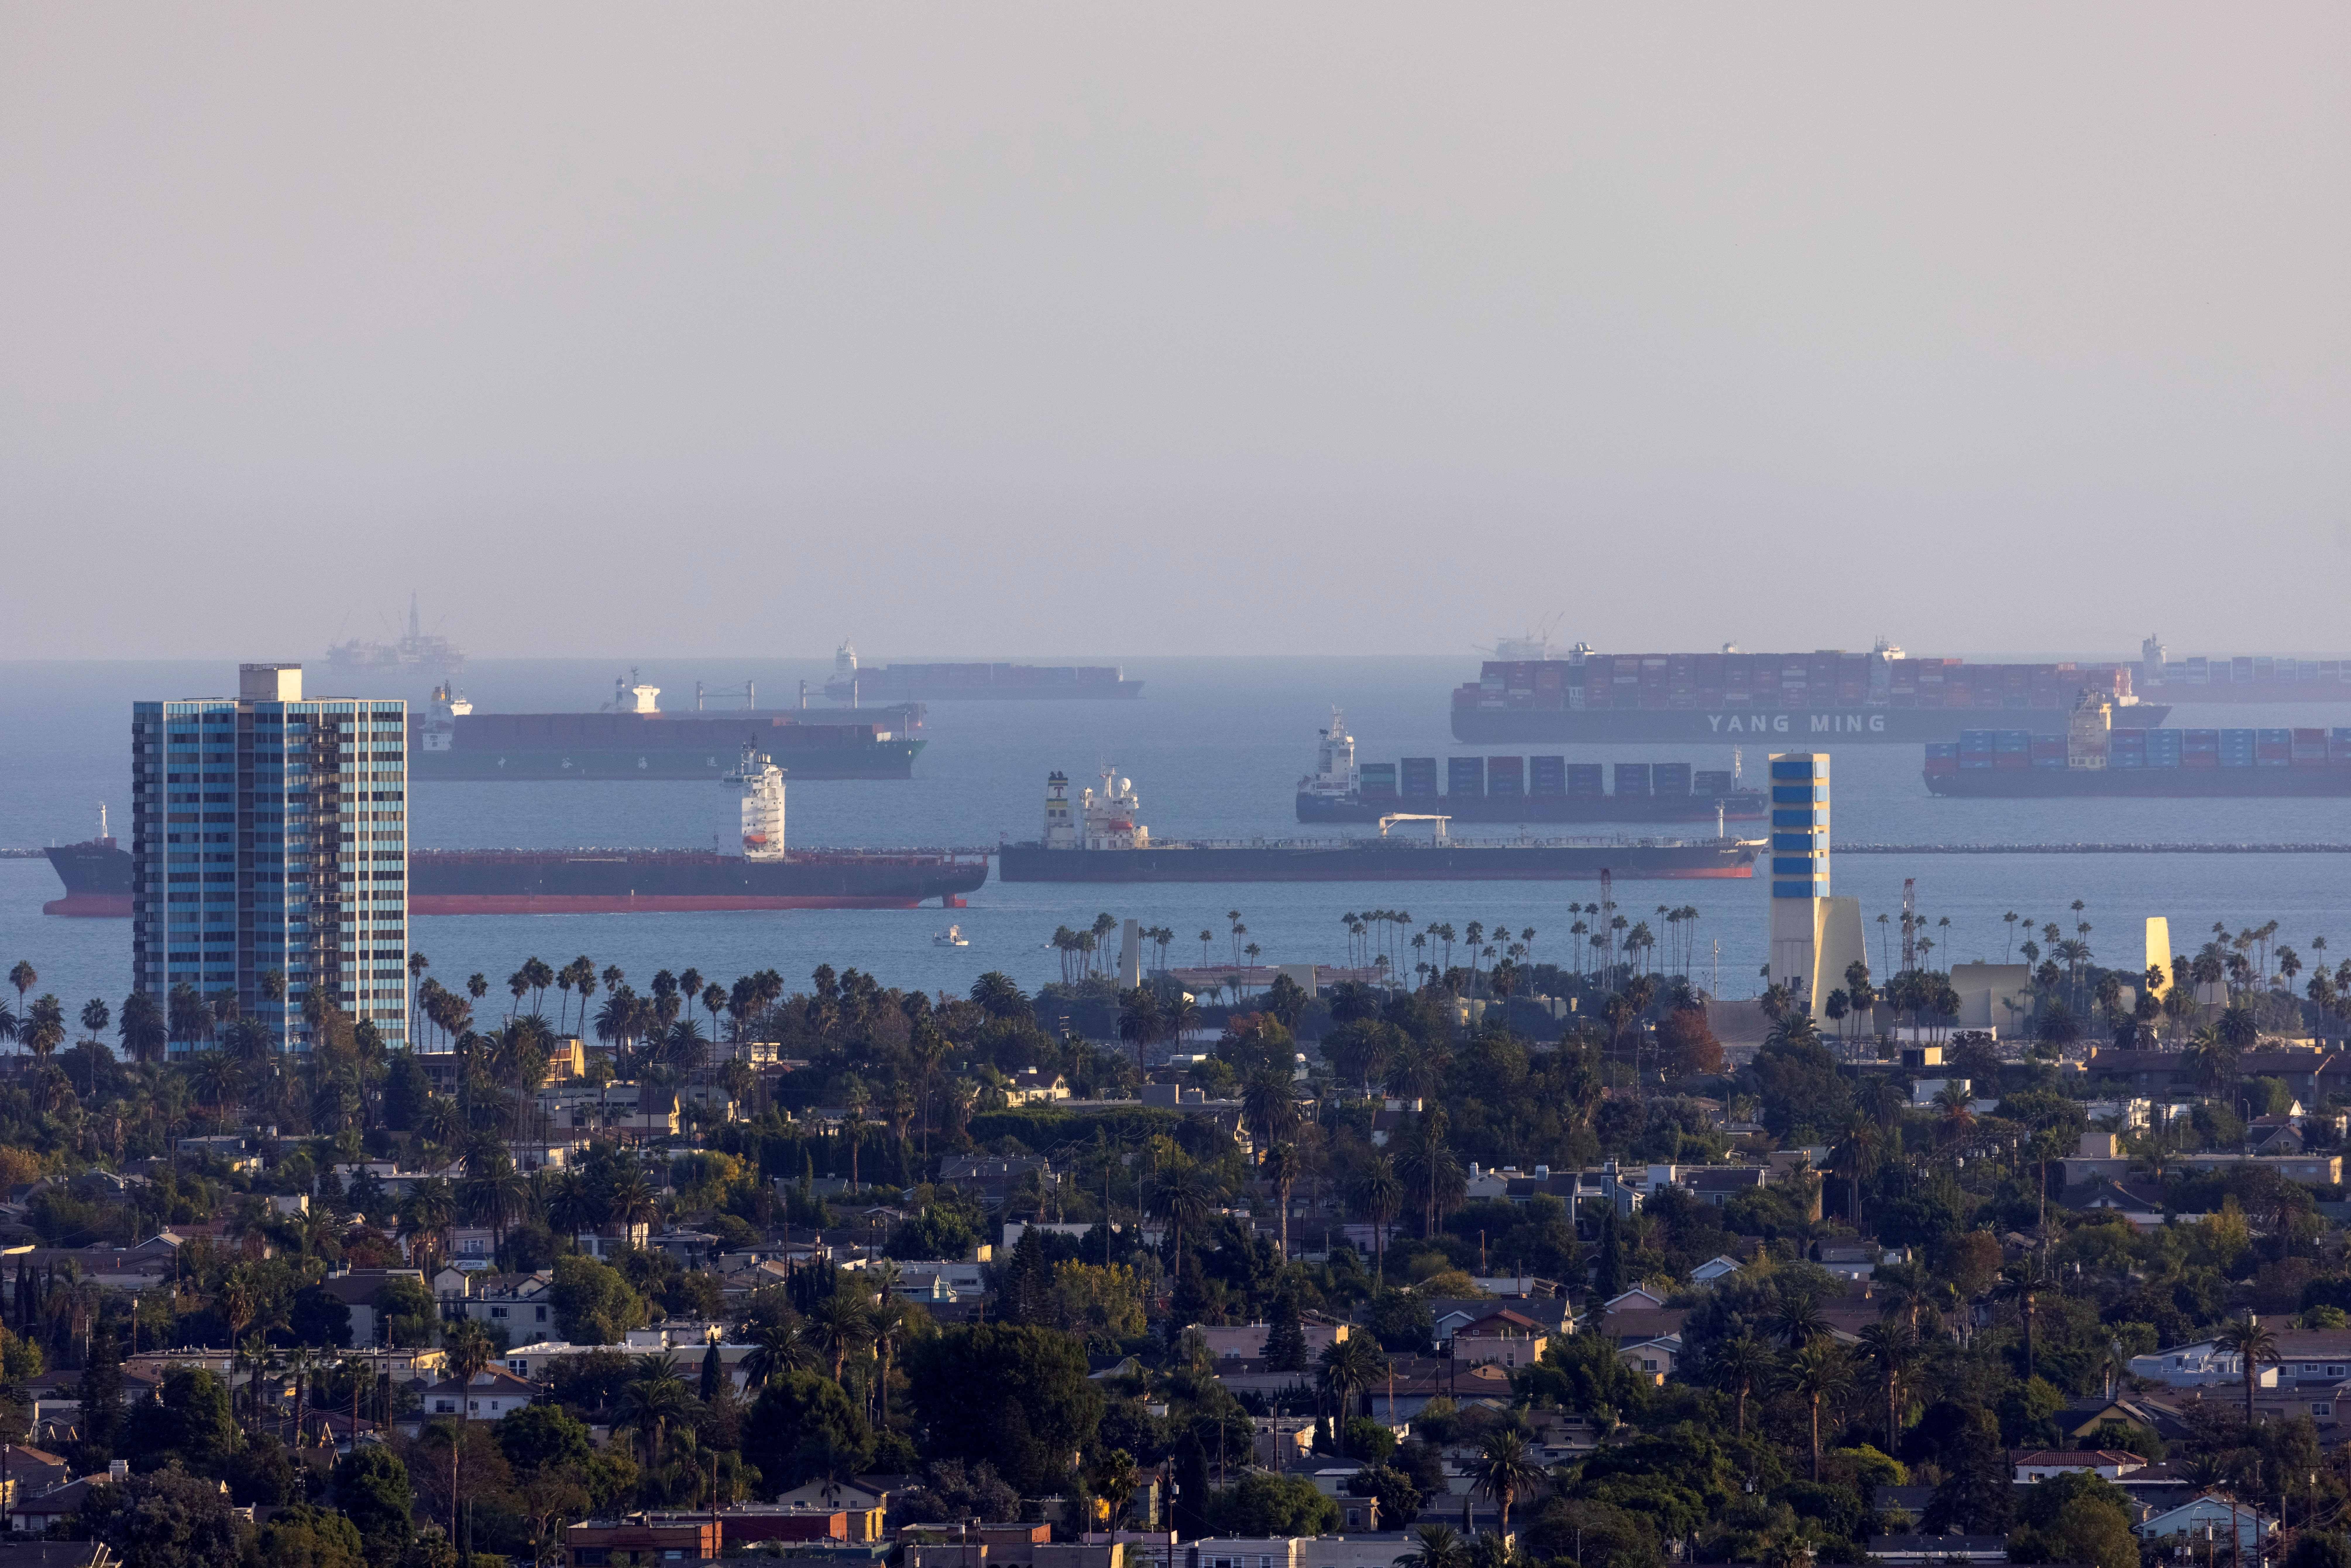 Container ships wait off the coast of the congested ports of Los Angeles and Long Beach, in Long Beach, California, U.S., September 29, 2021. REUTERS/Mike Blake